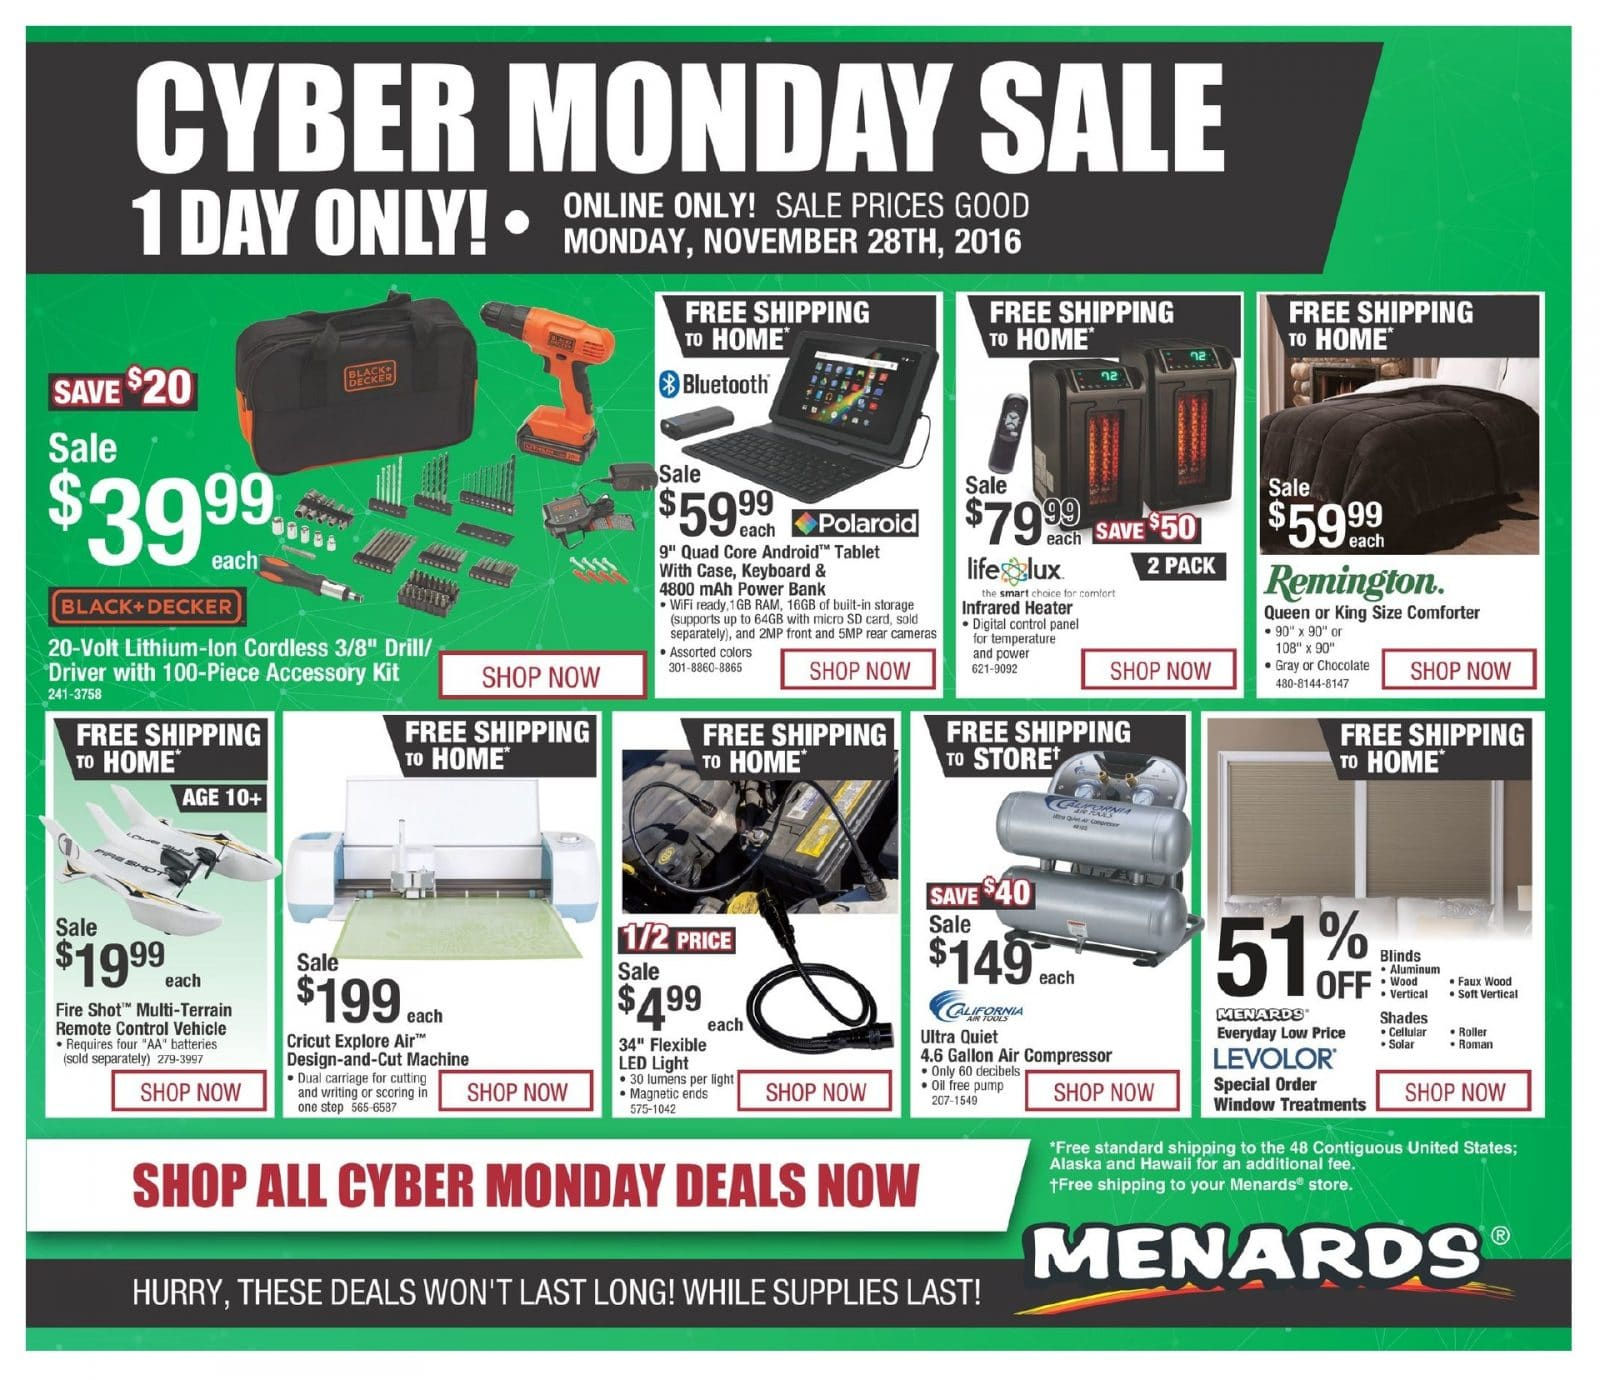 Uncategorized Black Friday Ad Menards menards cyber monday 2016 ad monday